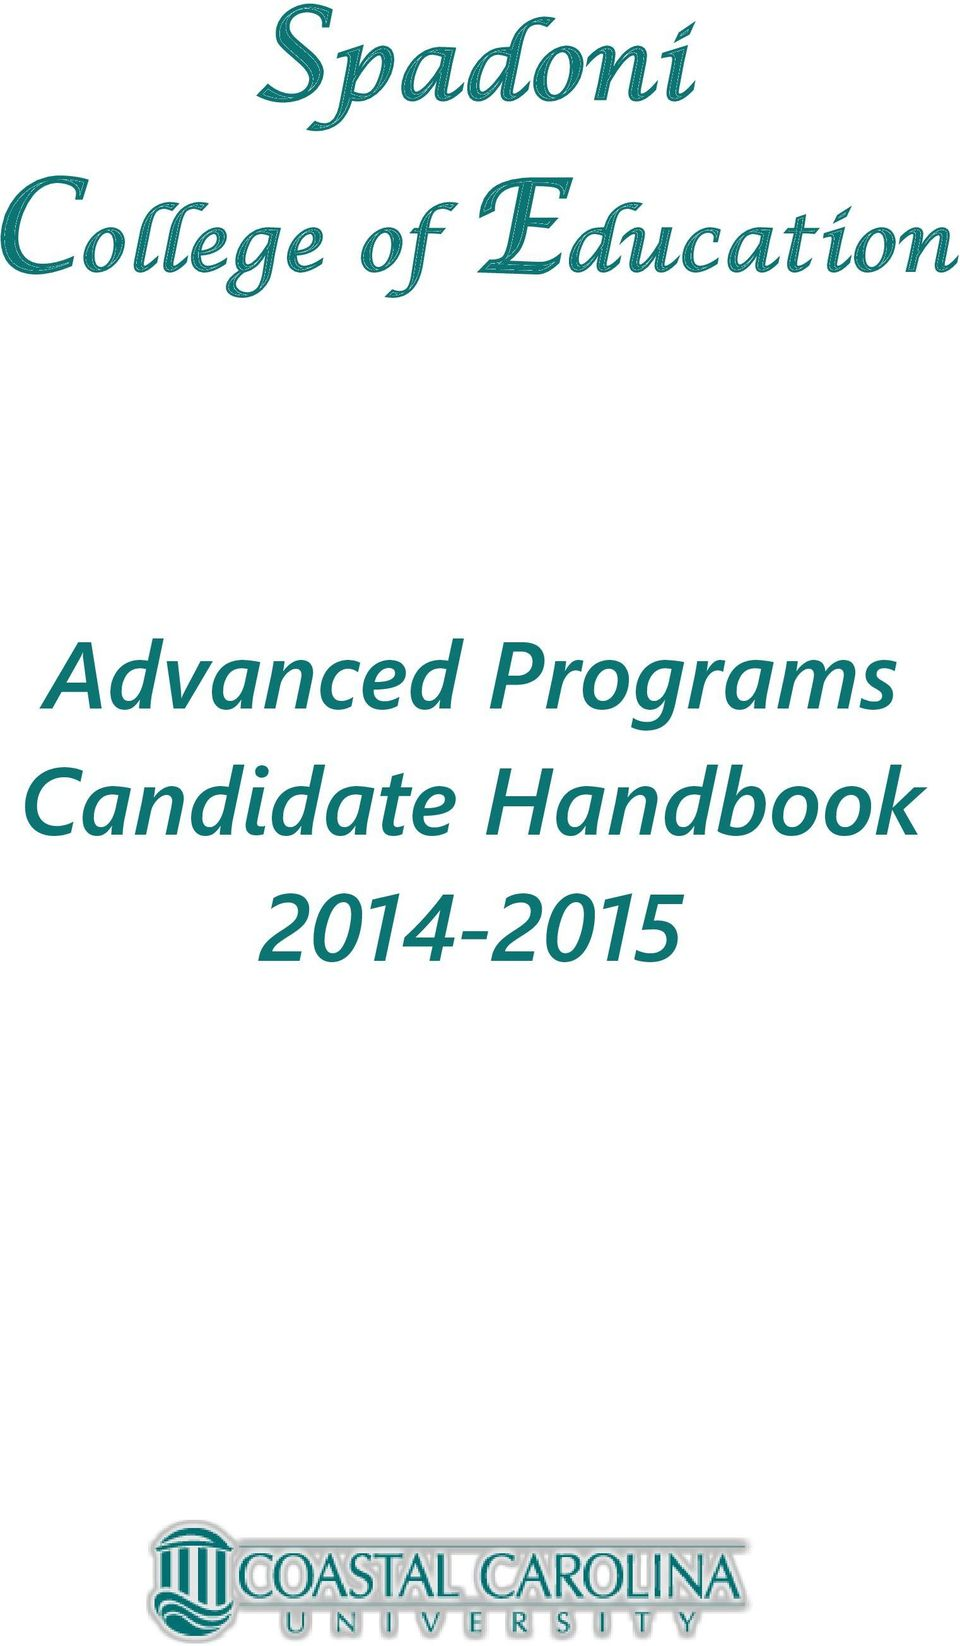 Programs Candidate